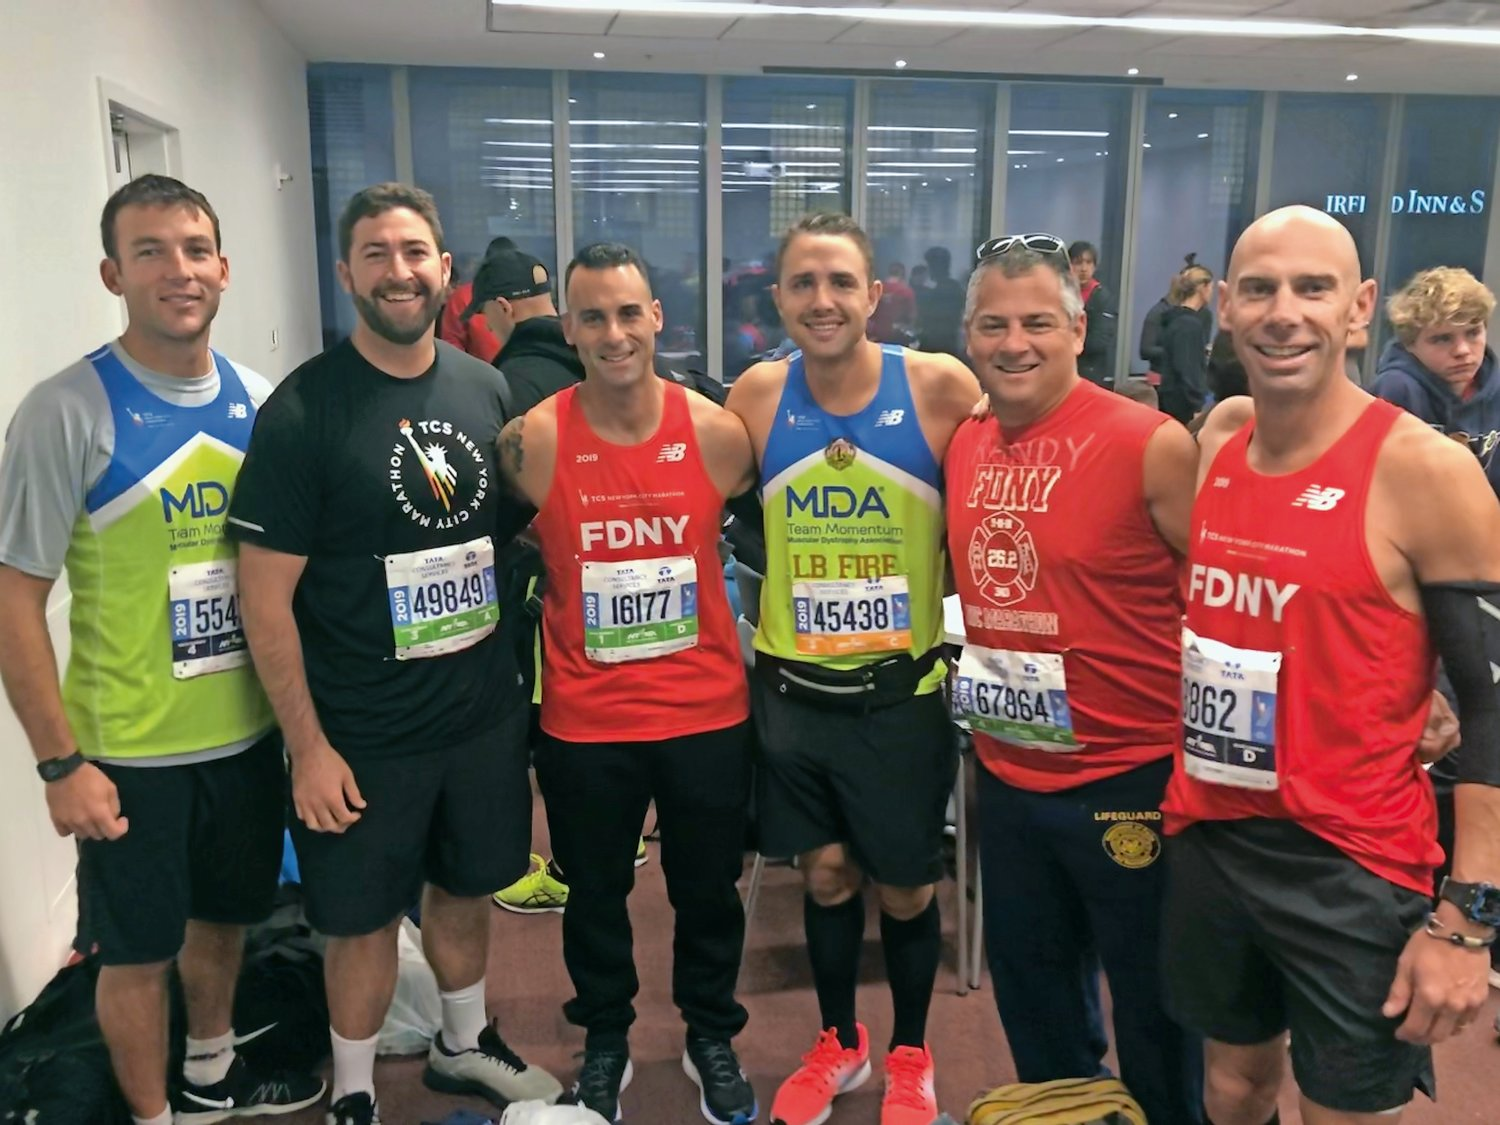 Long Beach residents Bryan Jones, far left, Devin Weinshank, Etan Blatt, Sam Pinto, Randy Eichin and Kelly Coyle before the start of the New York City Marathon on Nov. 3.